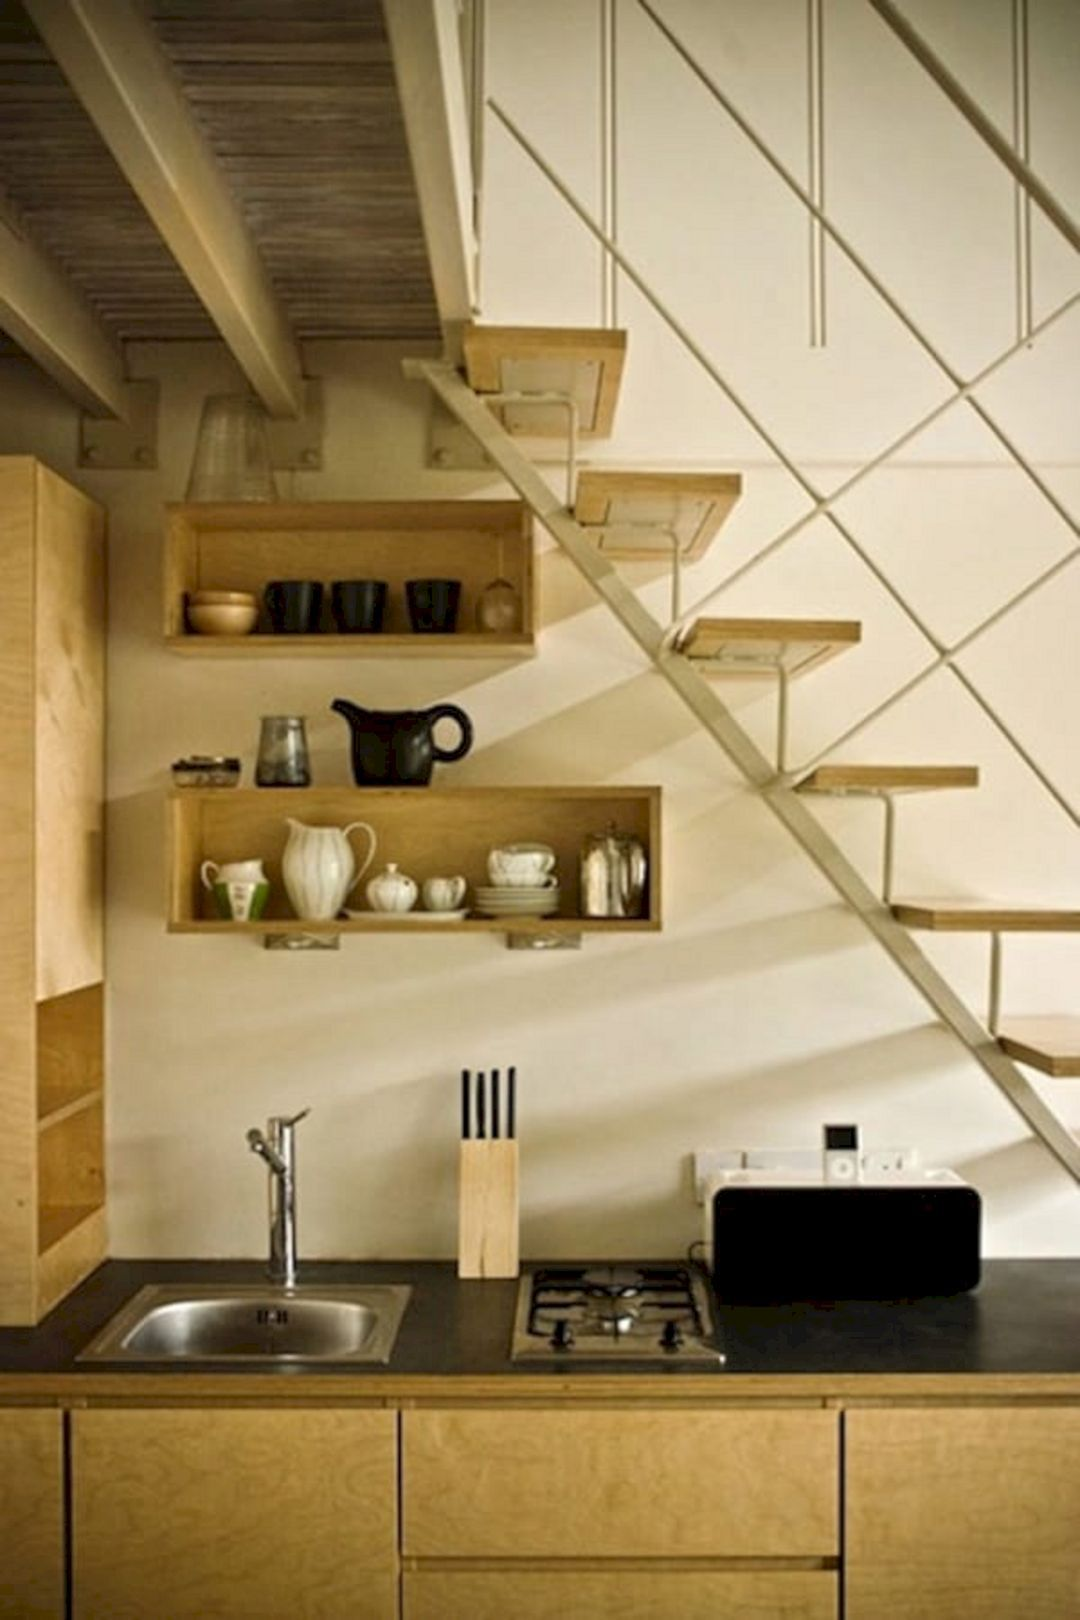 10 Minimalist Kitchen Set Design For Under Stairs You Need To Try